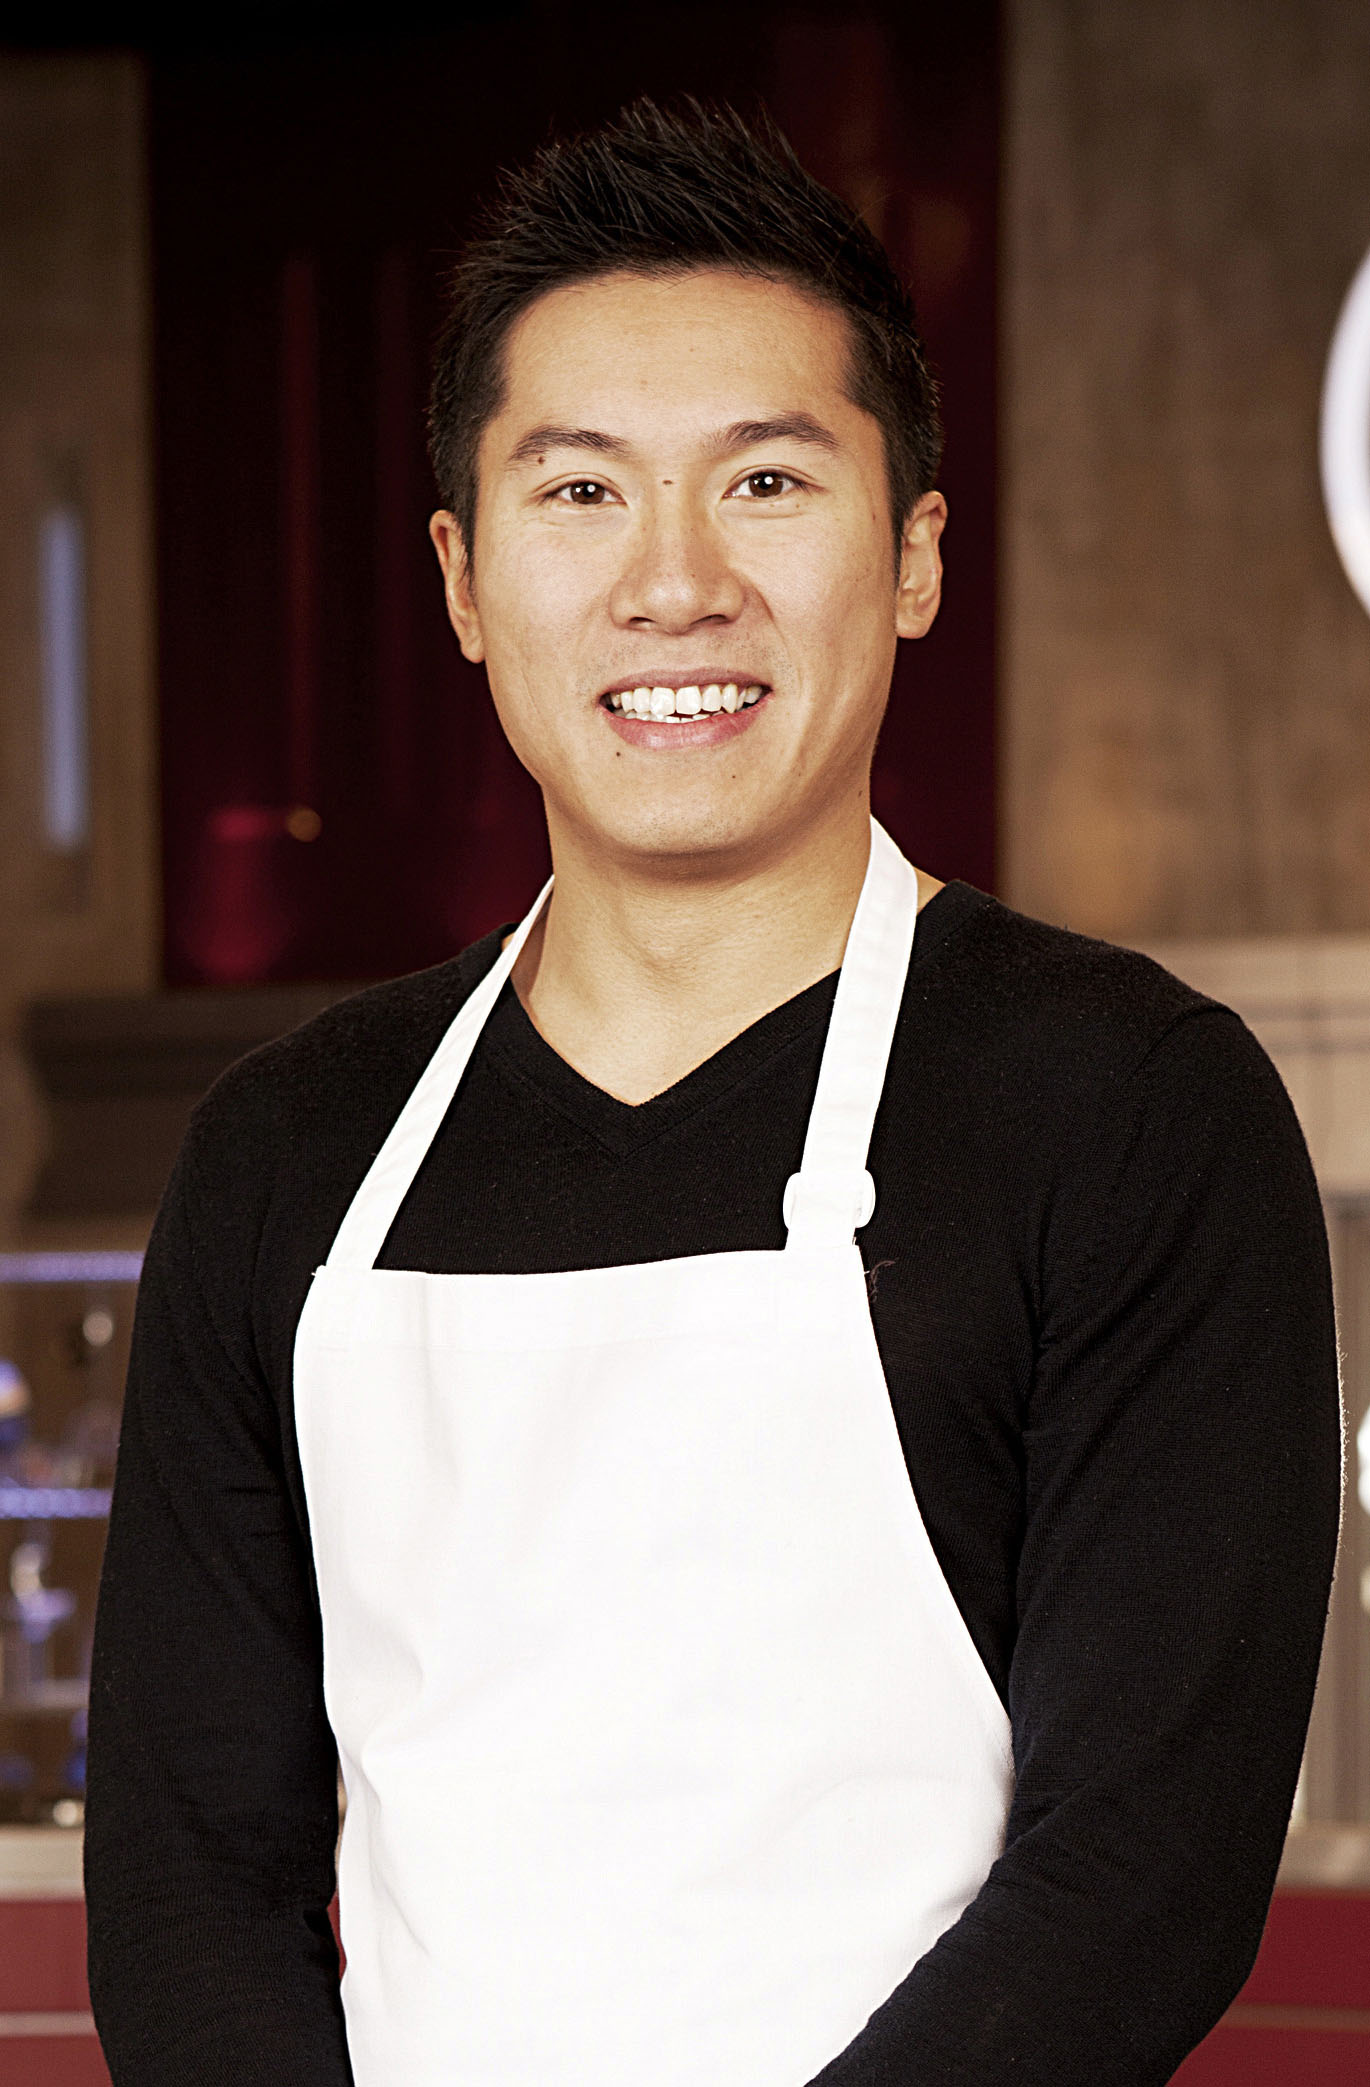 Masterchef runner-up Larkin Chen made appearances in London and Bristol